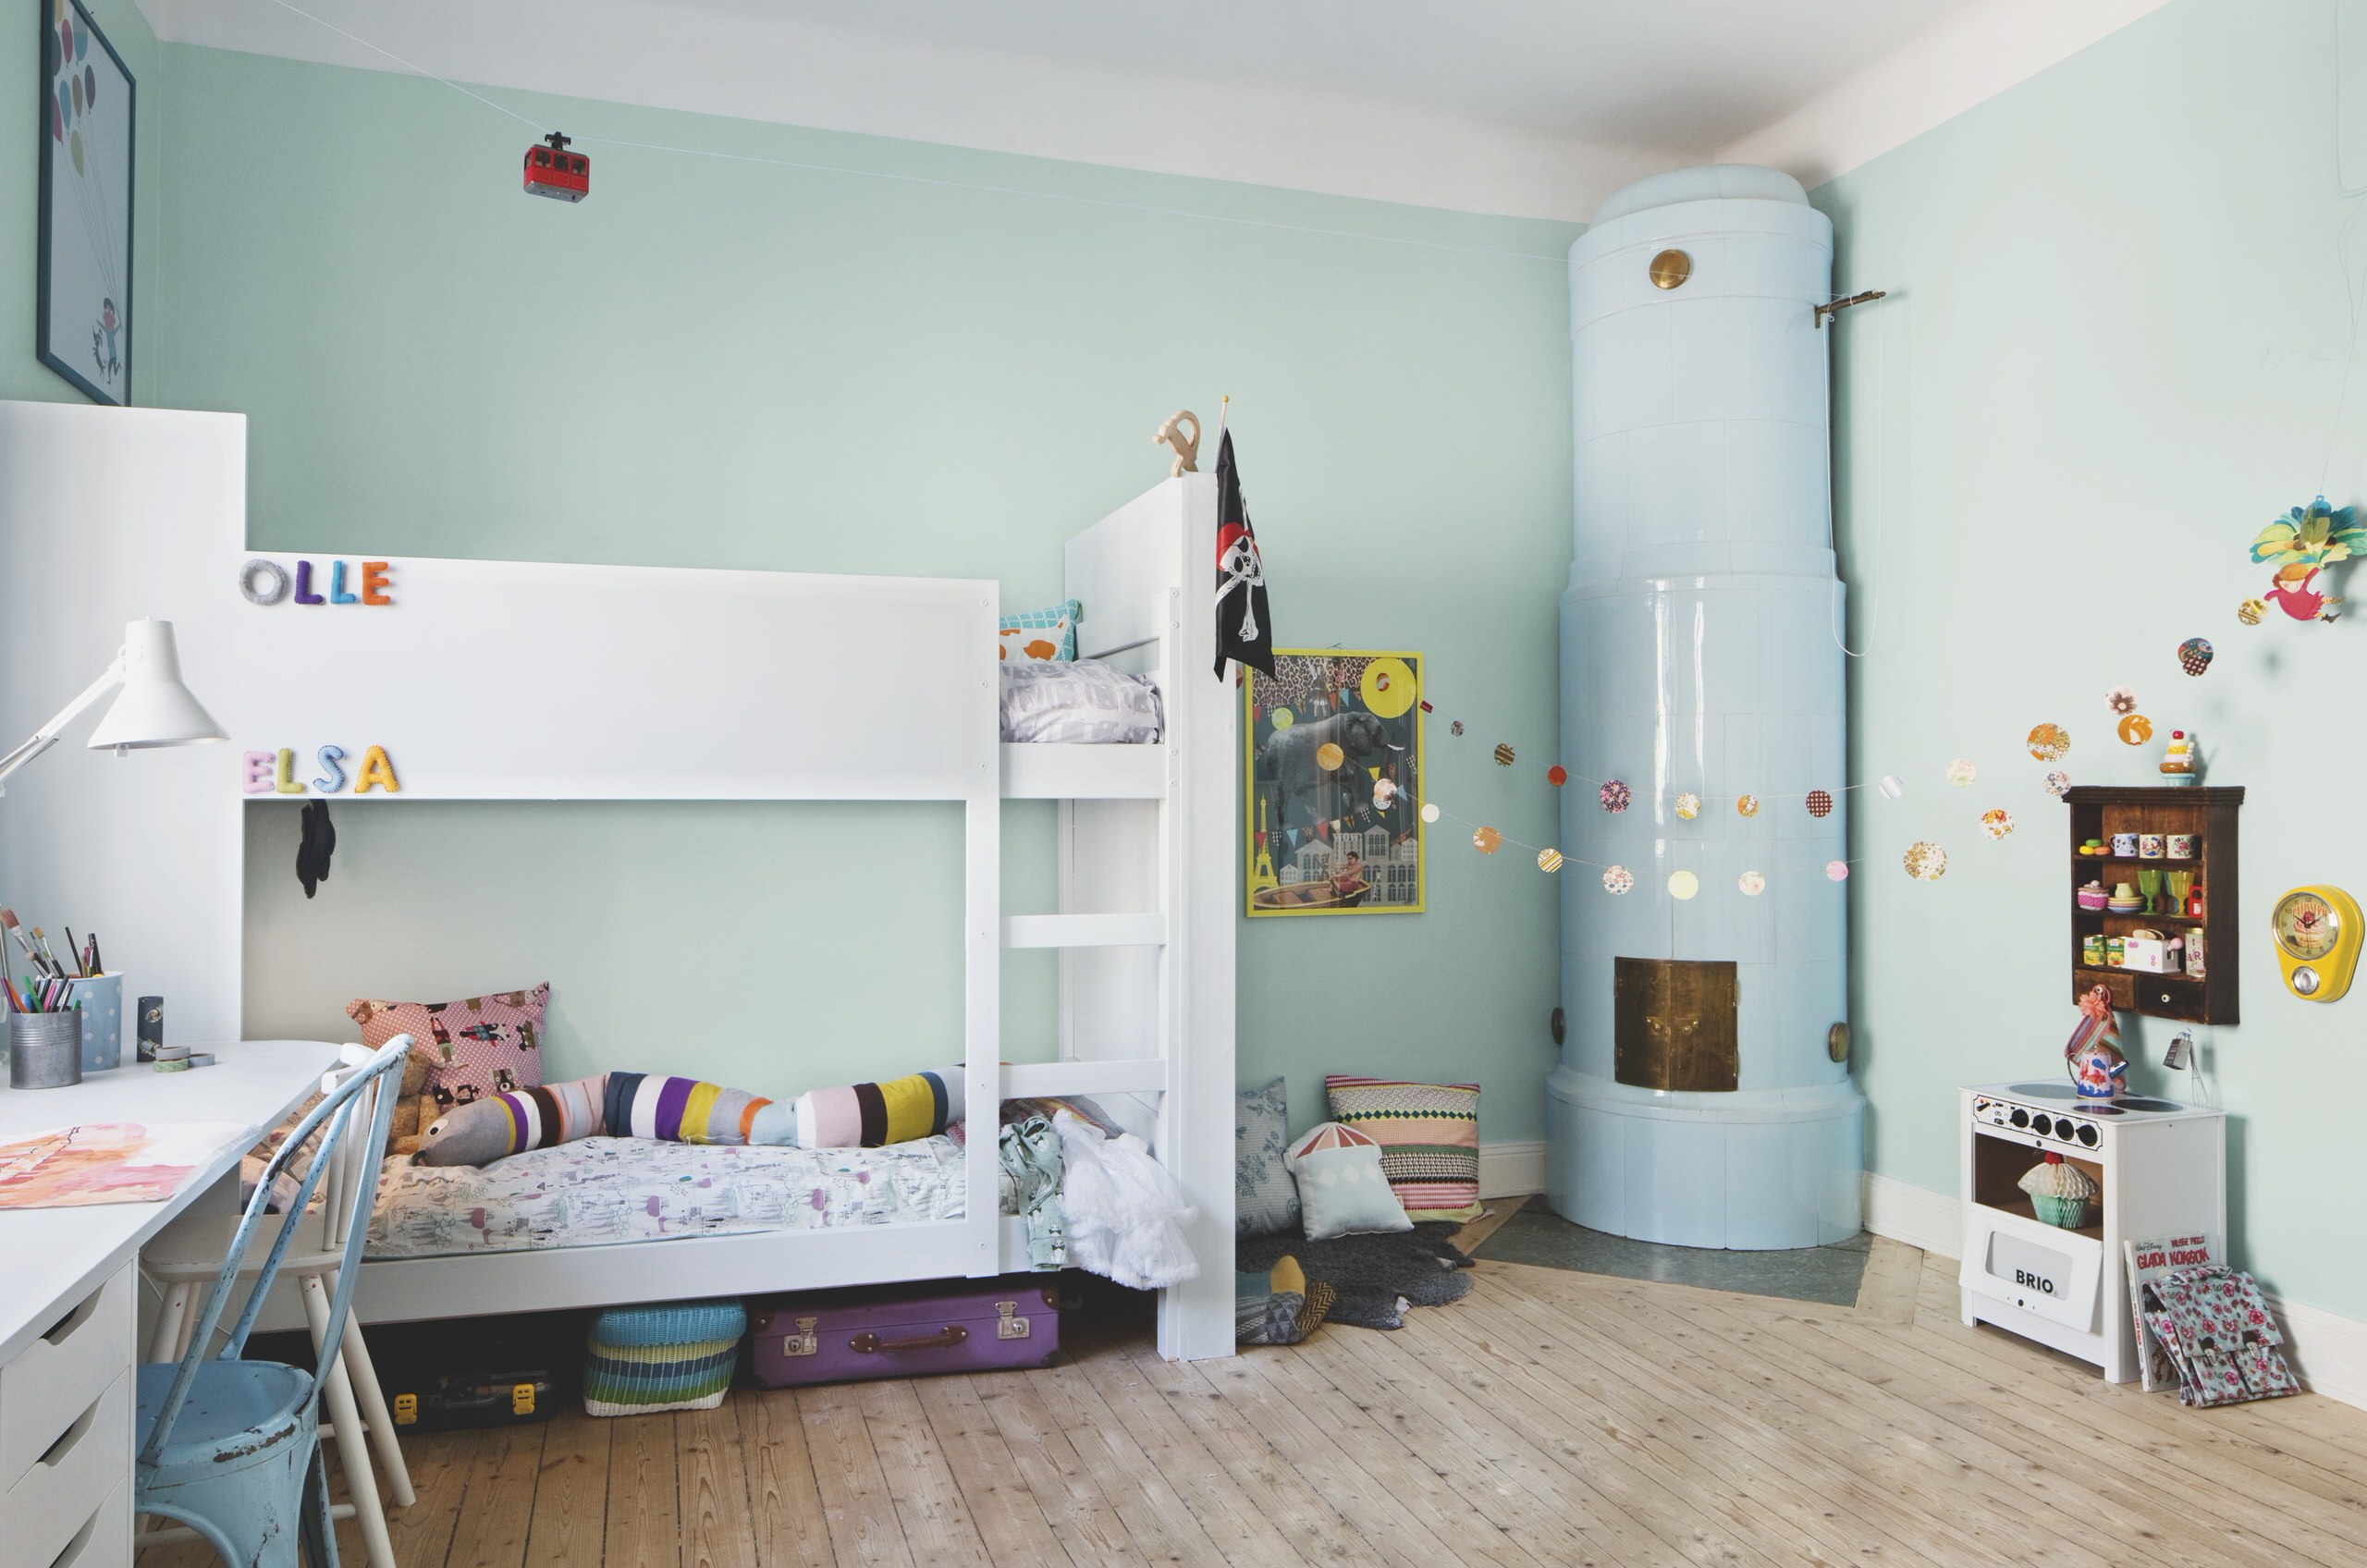 enjoyable bedroom designs for kidschildren. 15 Enjoyable Modern Kids Room Designs That Will Entertain Your Children